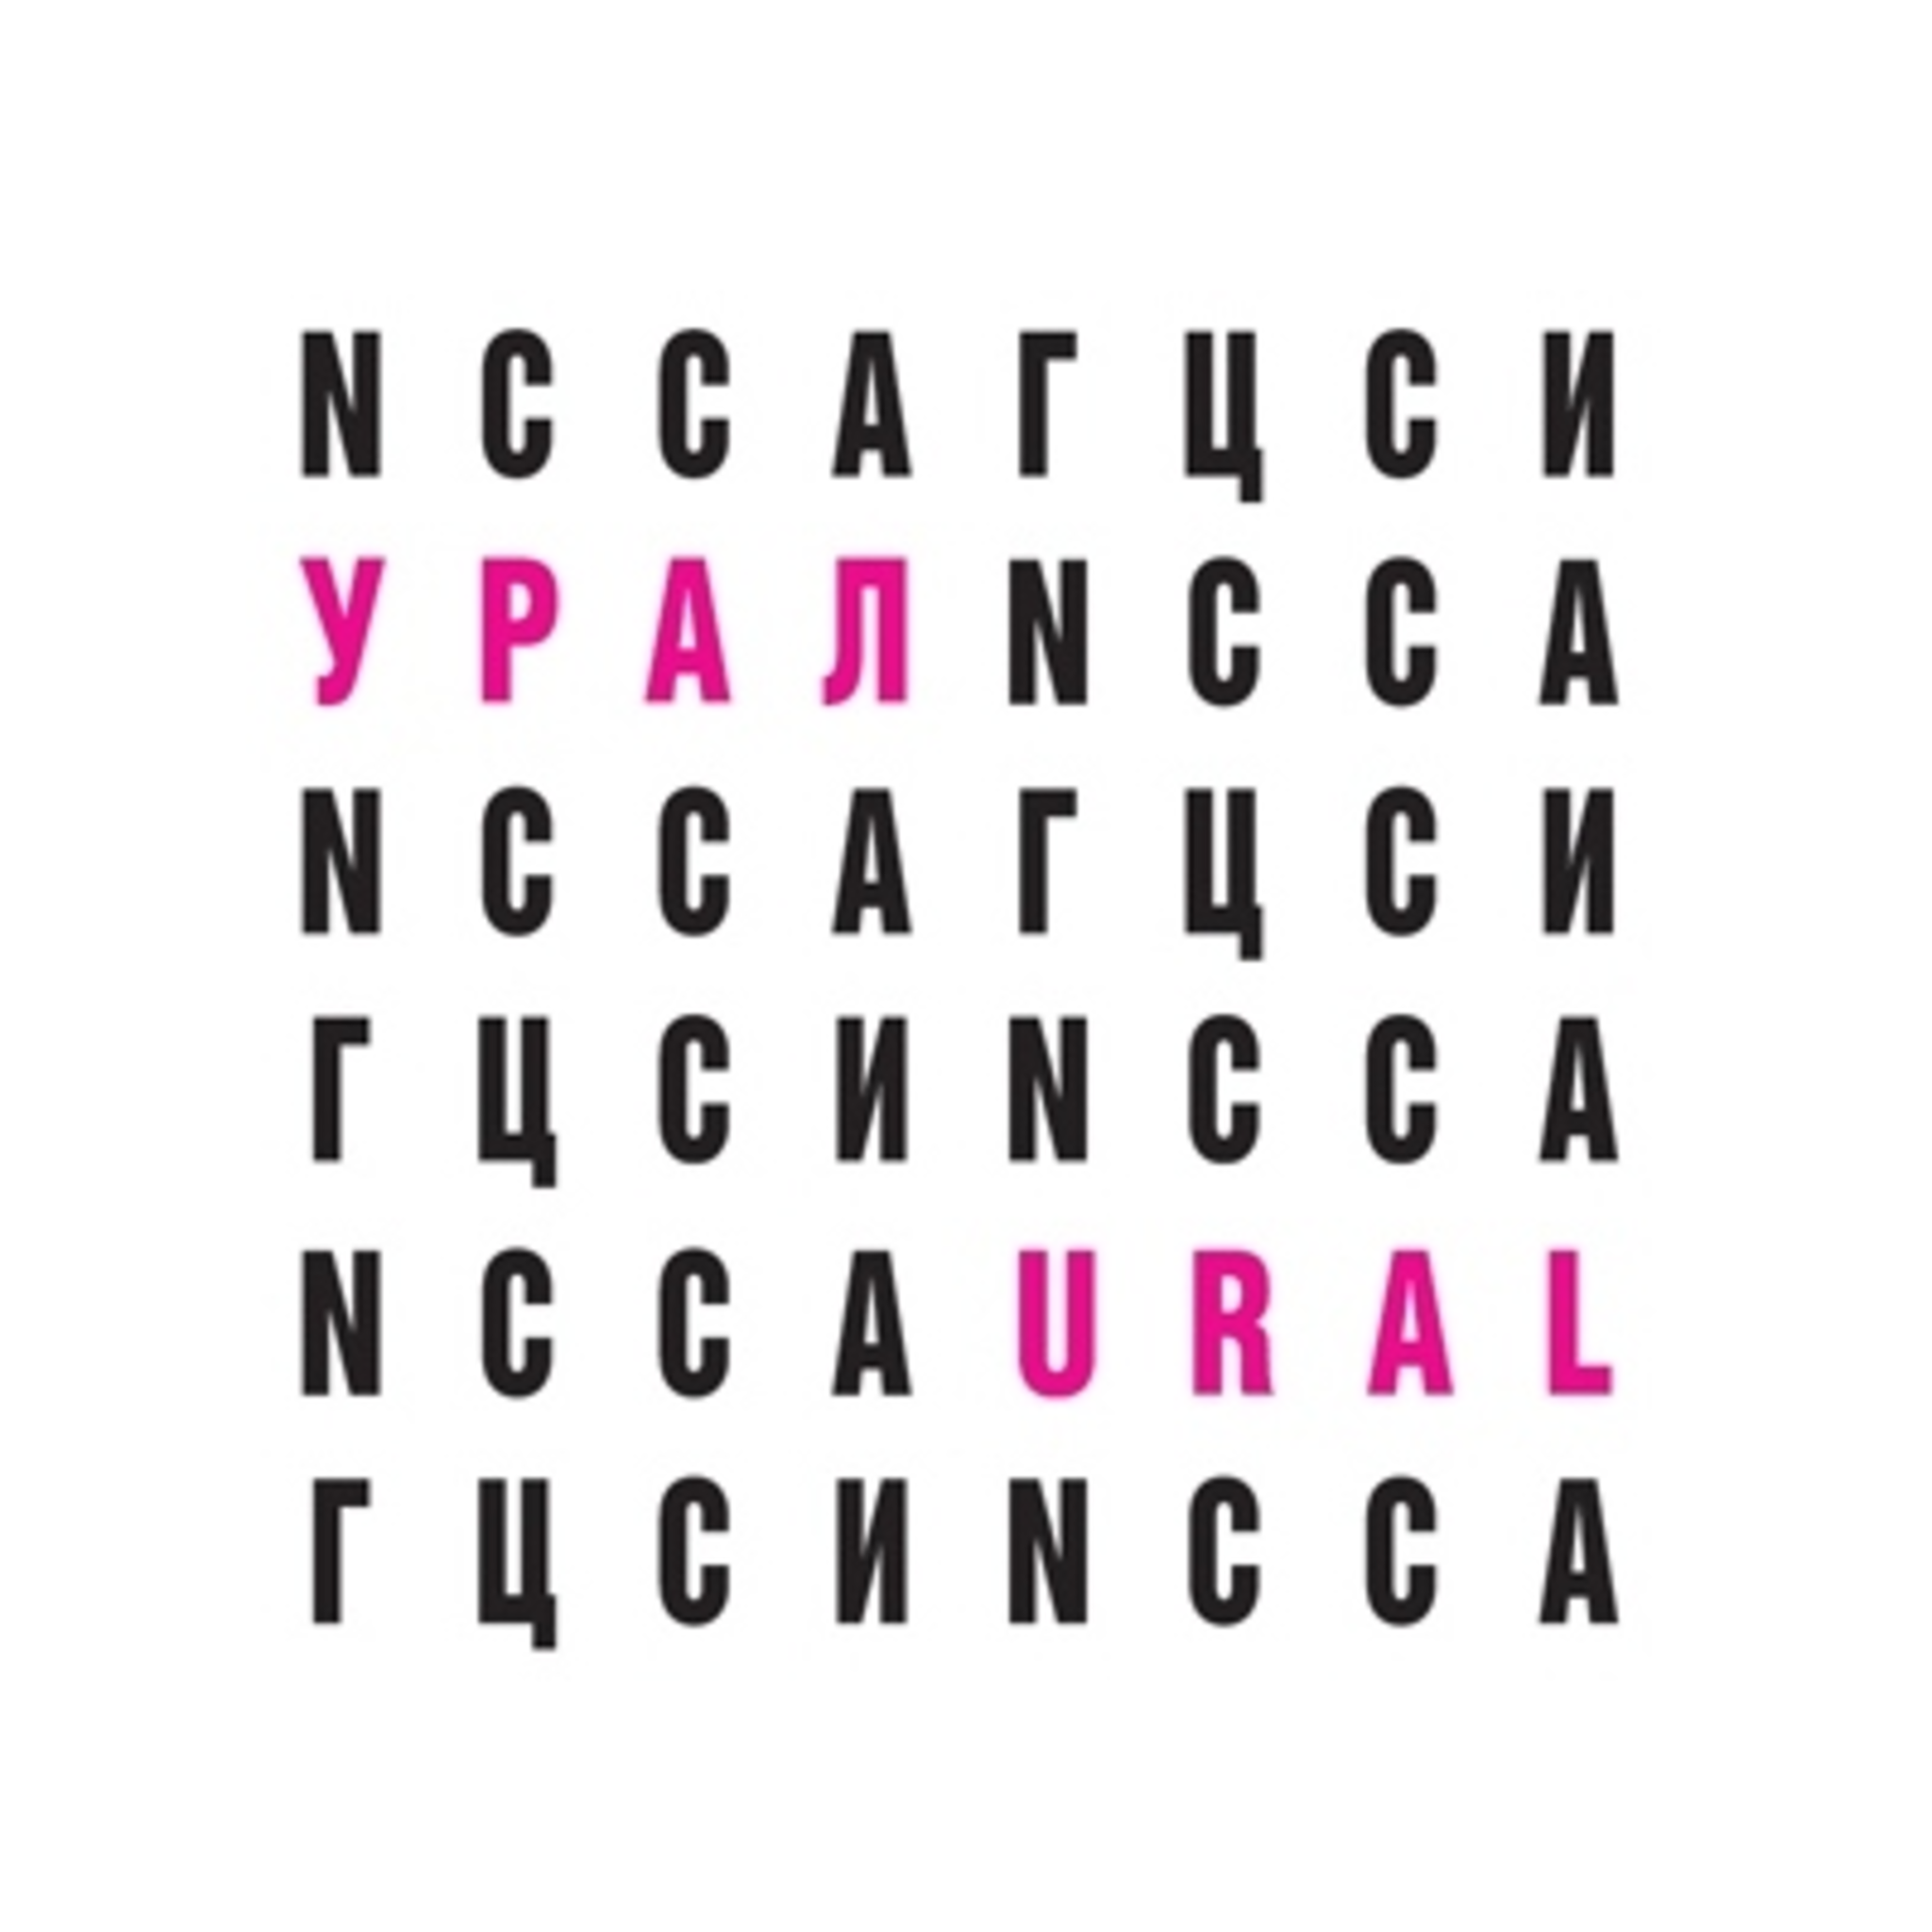 The Ural branch of the NCCA